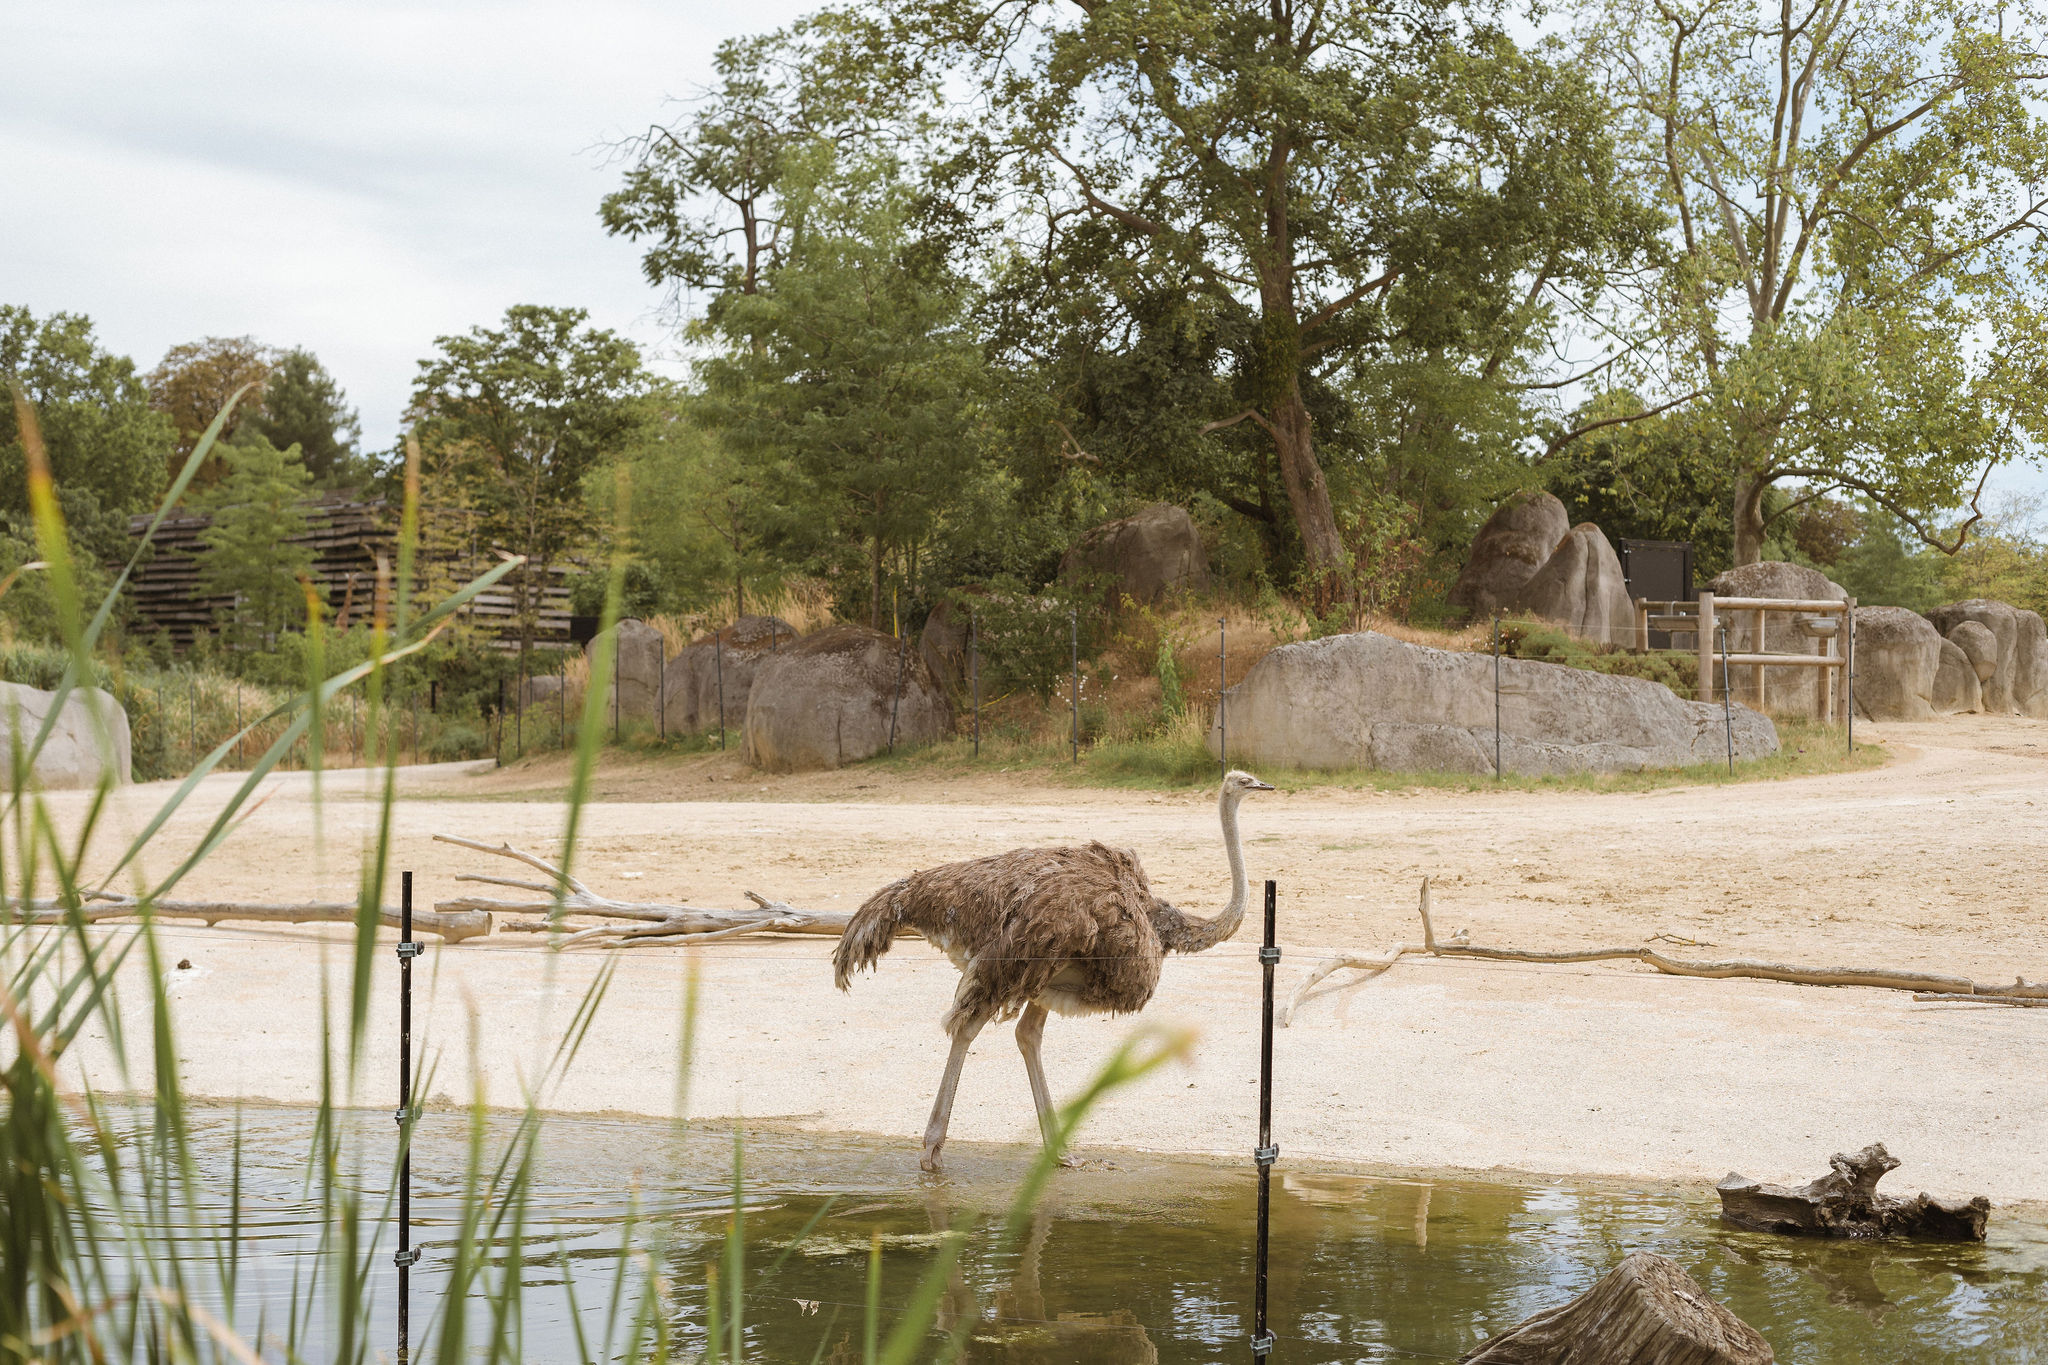 paris zoo ostrich photographer iheartparis.jpg